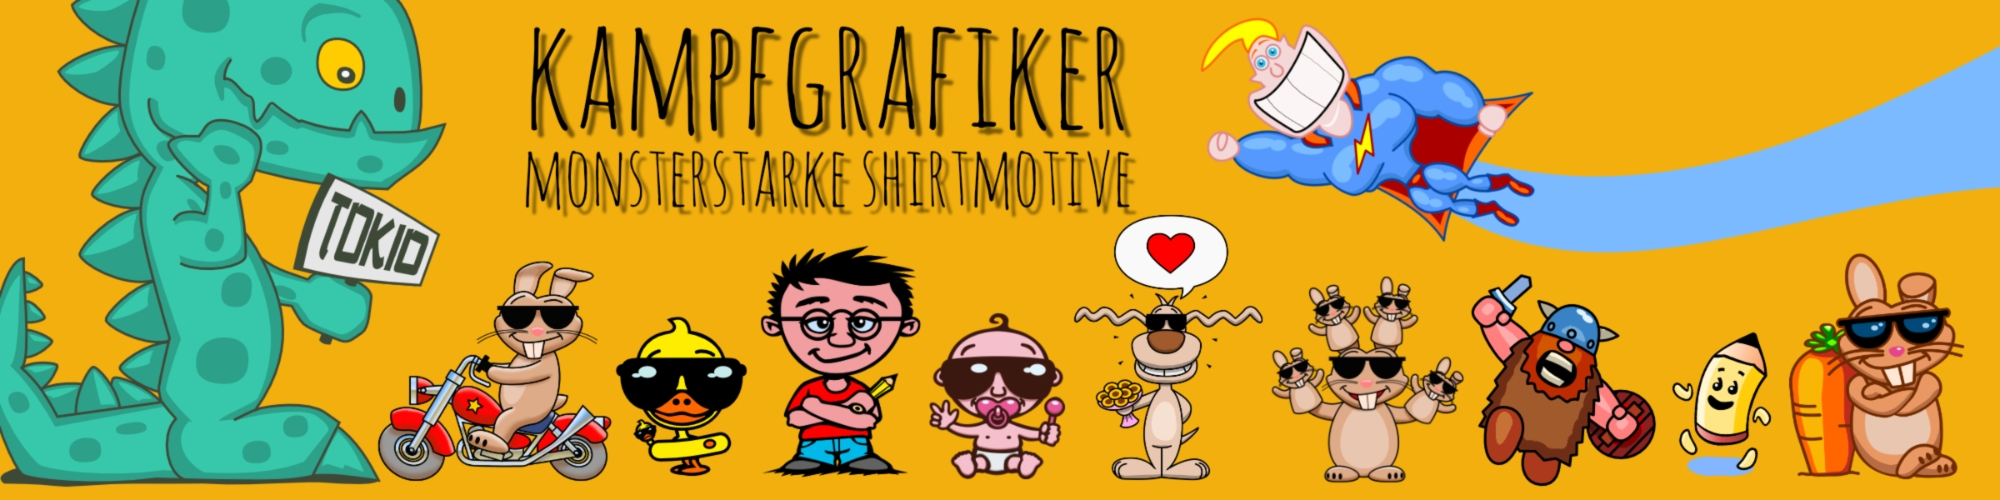 Showroom - Kampfgrafiker